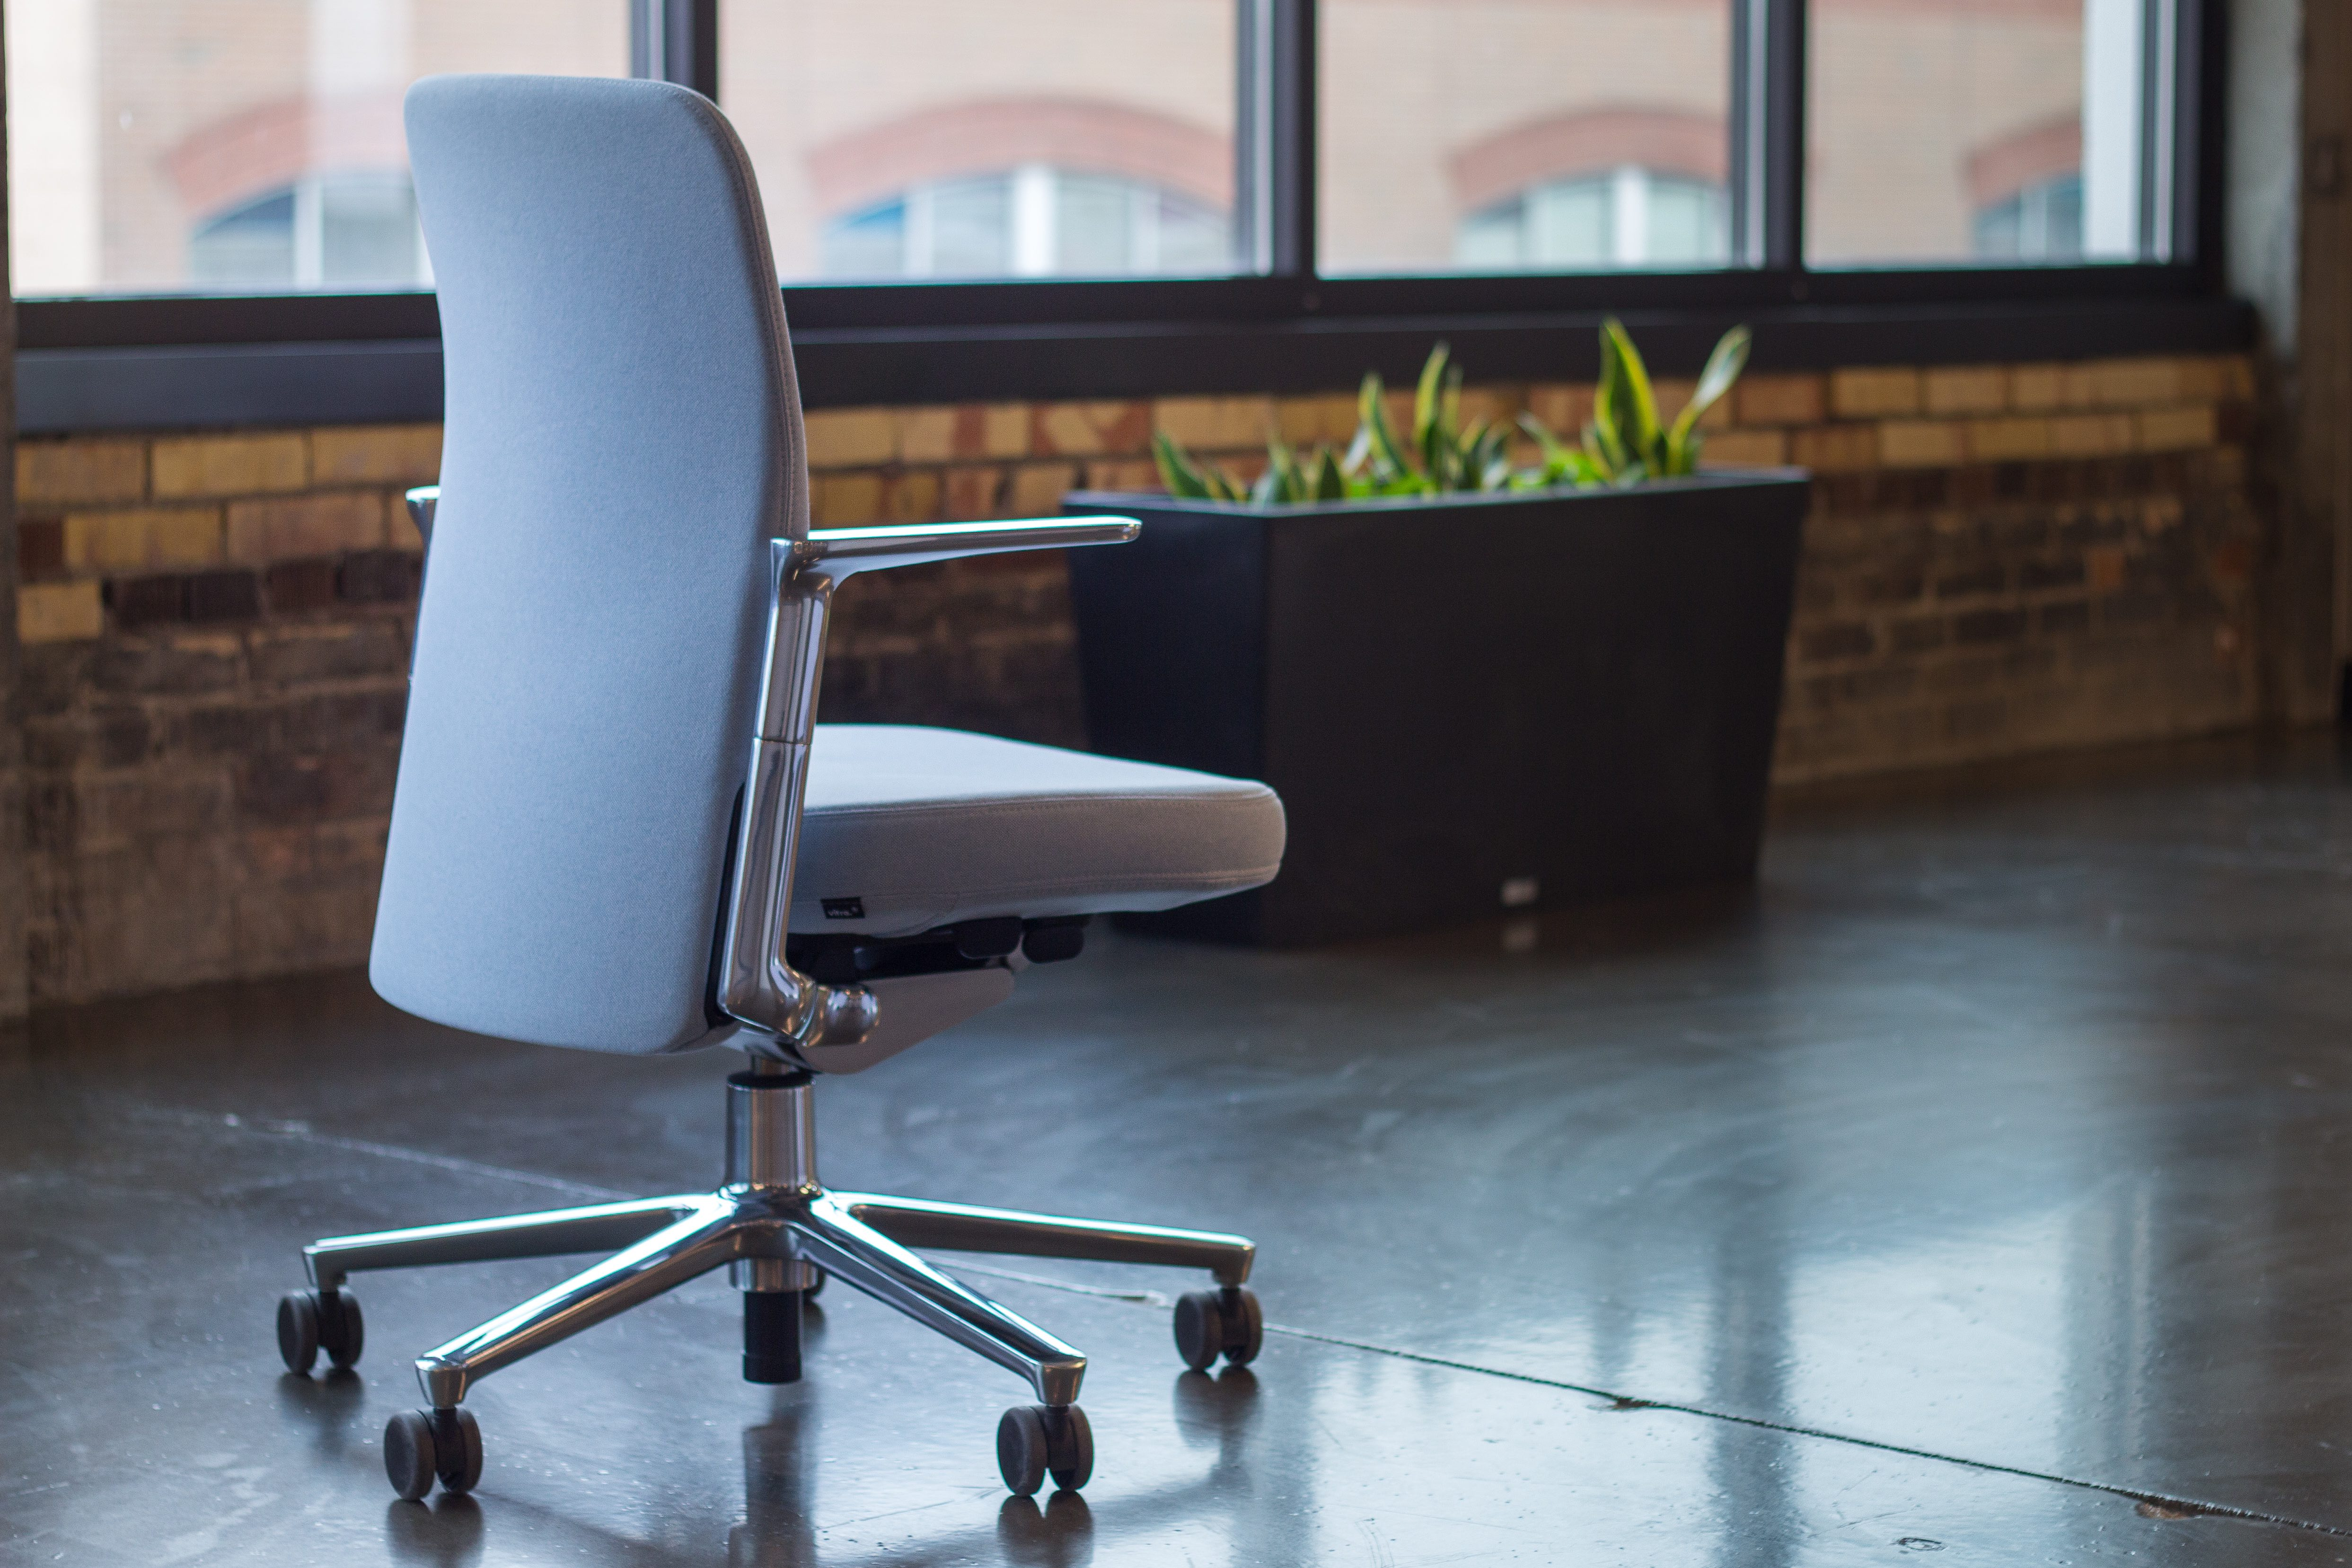 office chair review evacuation rental living with vitra s pacific jony ive choice for special thanks to titletown t2 accelerator providing photography space this